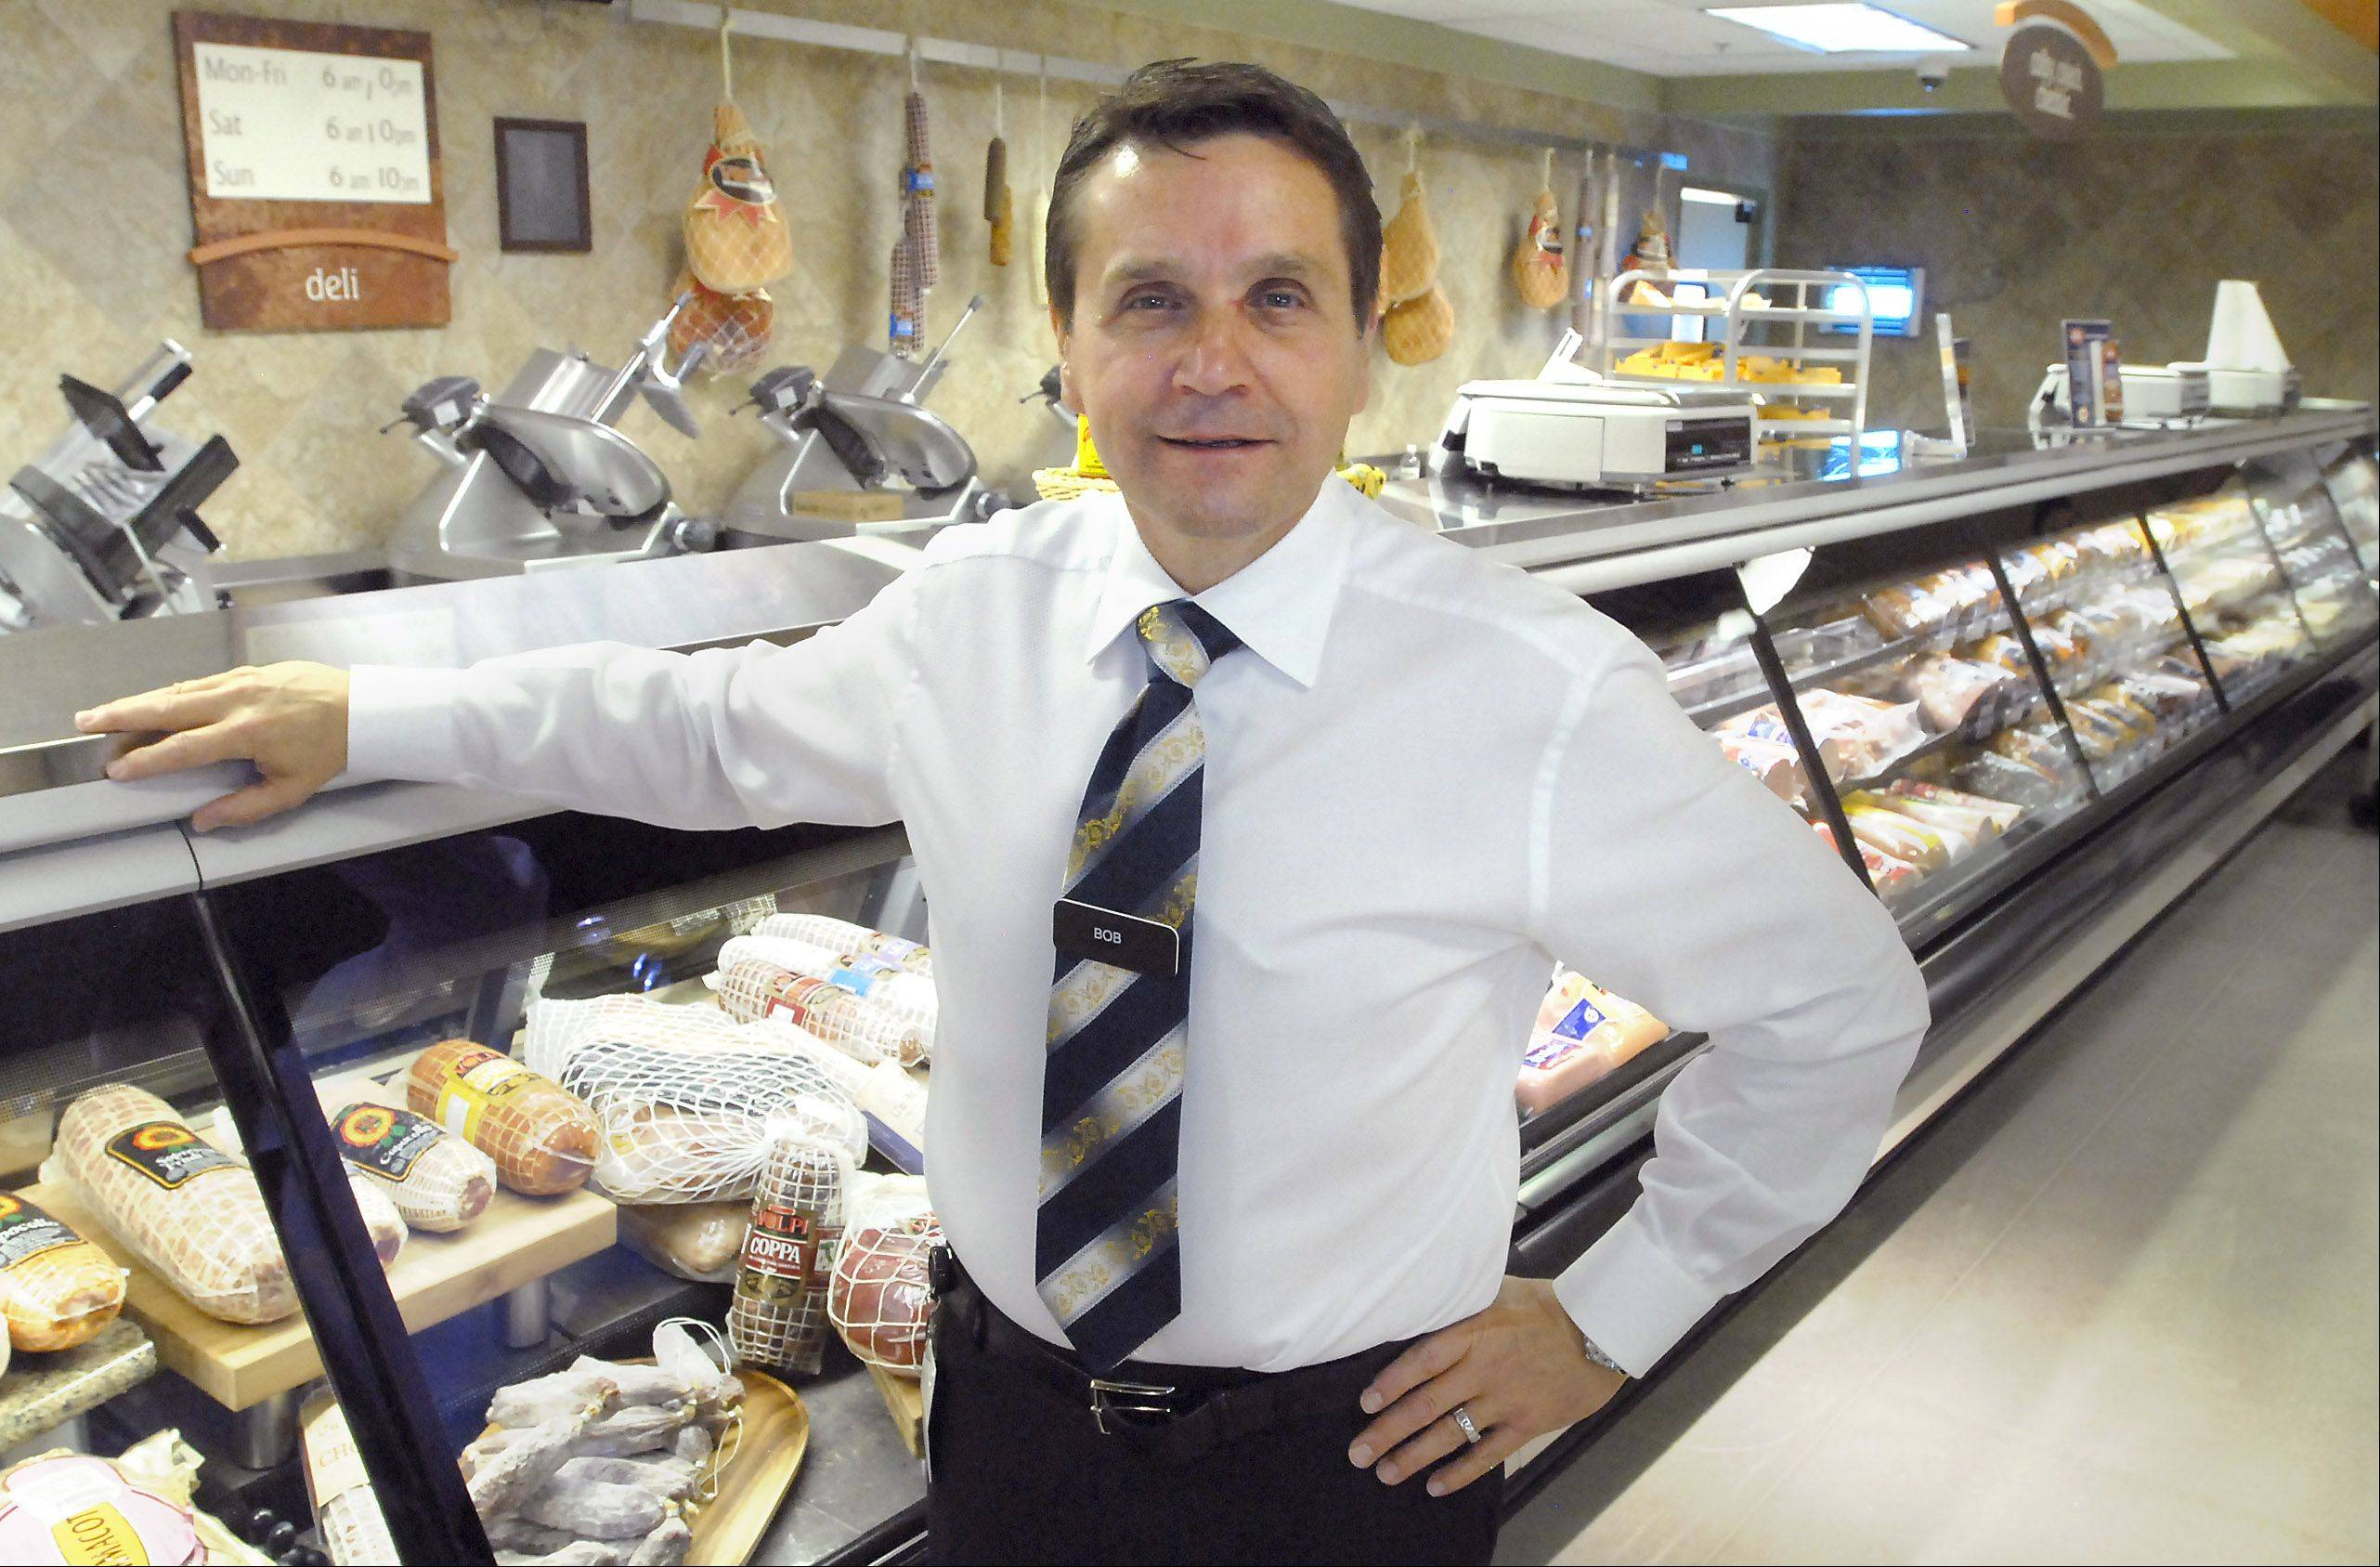 CEO Bob Mariano of Inverness stands at the deli counter of Mariano's Fresh Market in Arlington Heights.